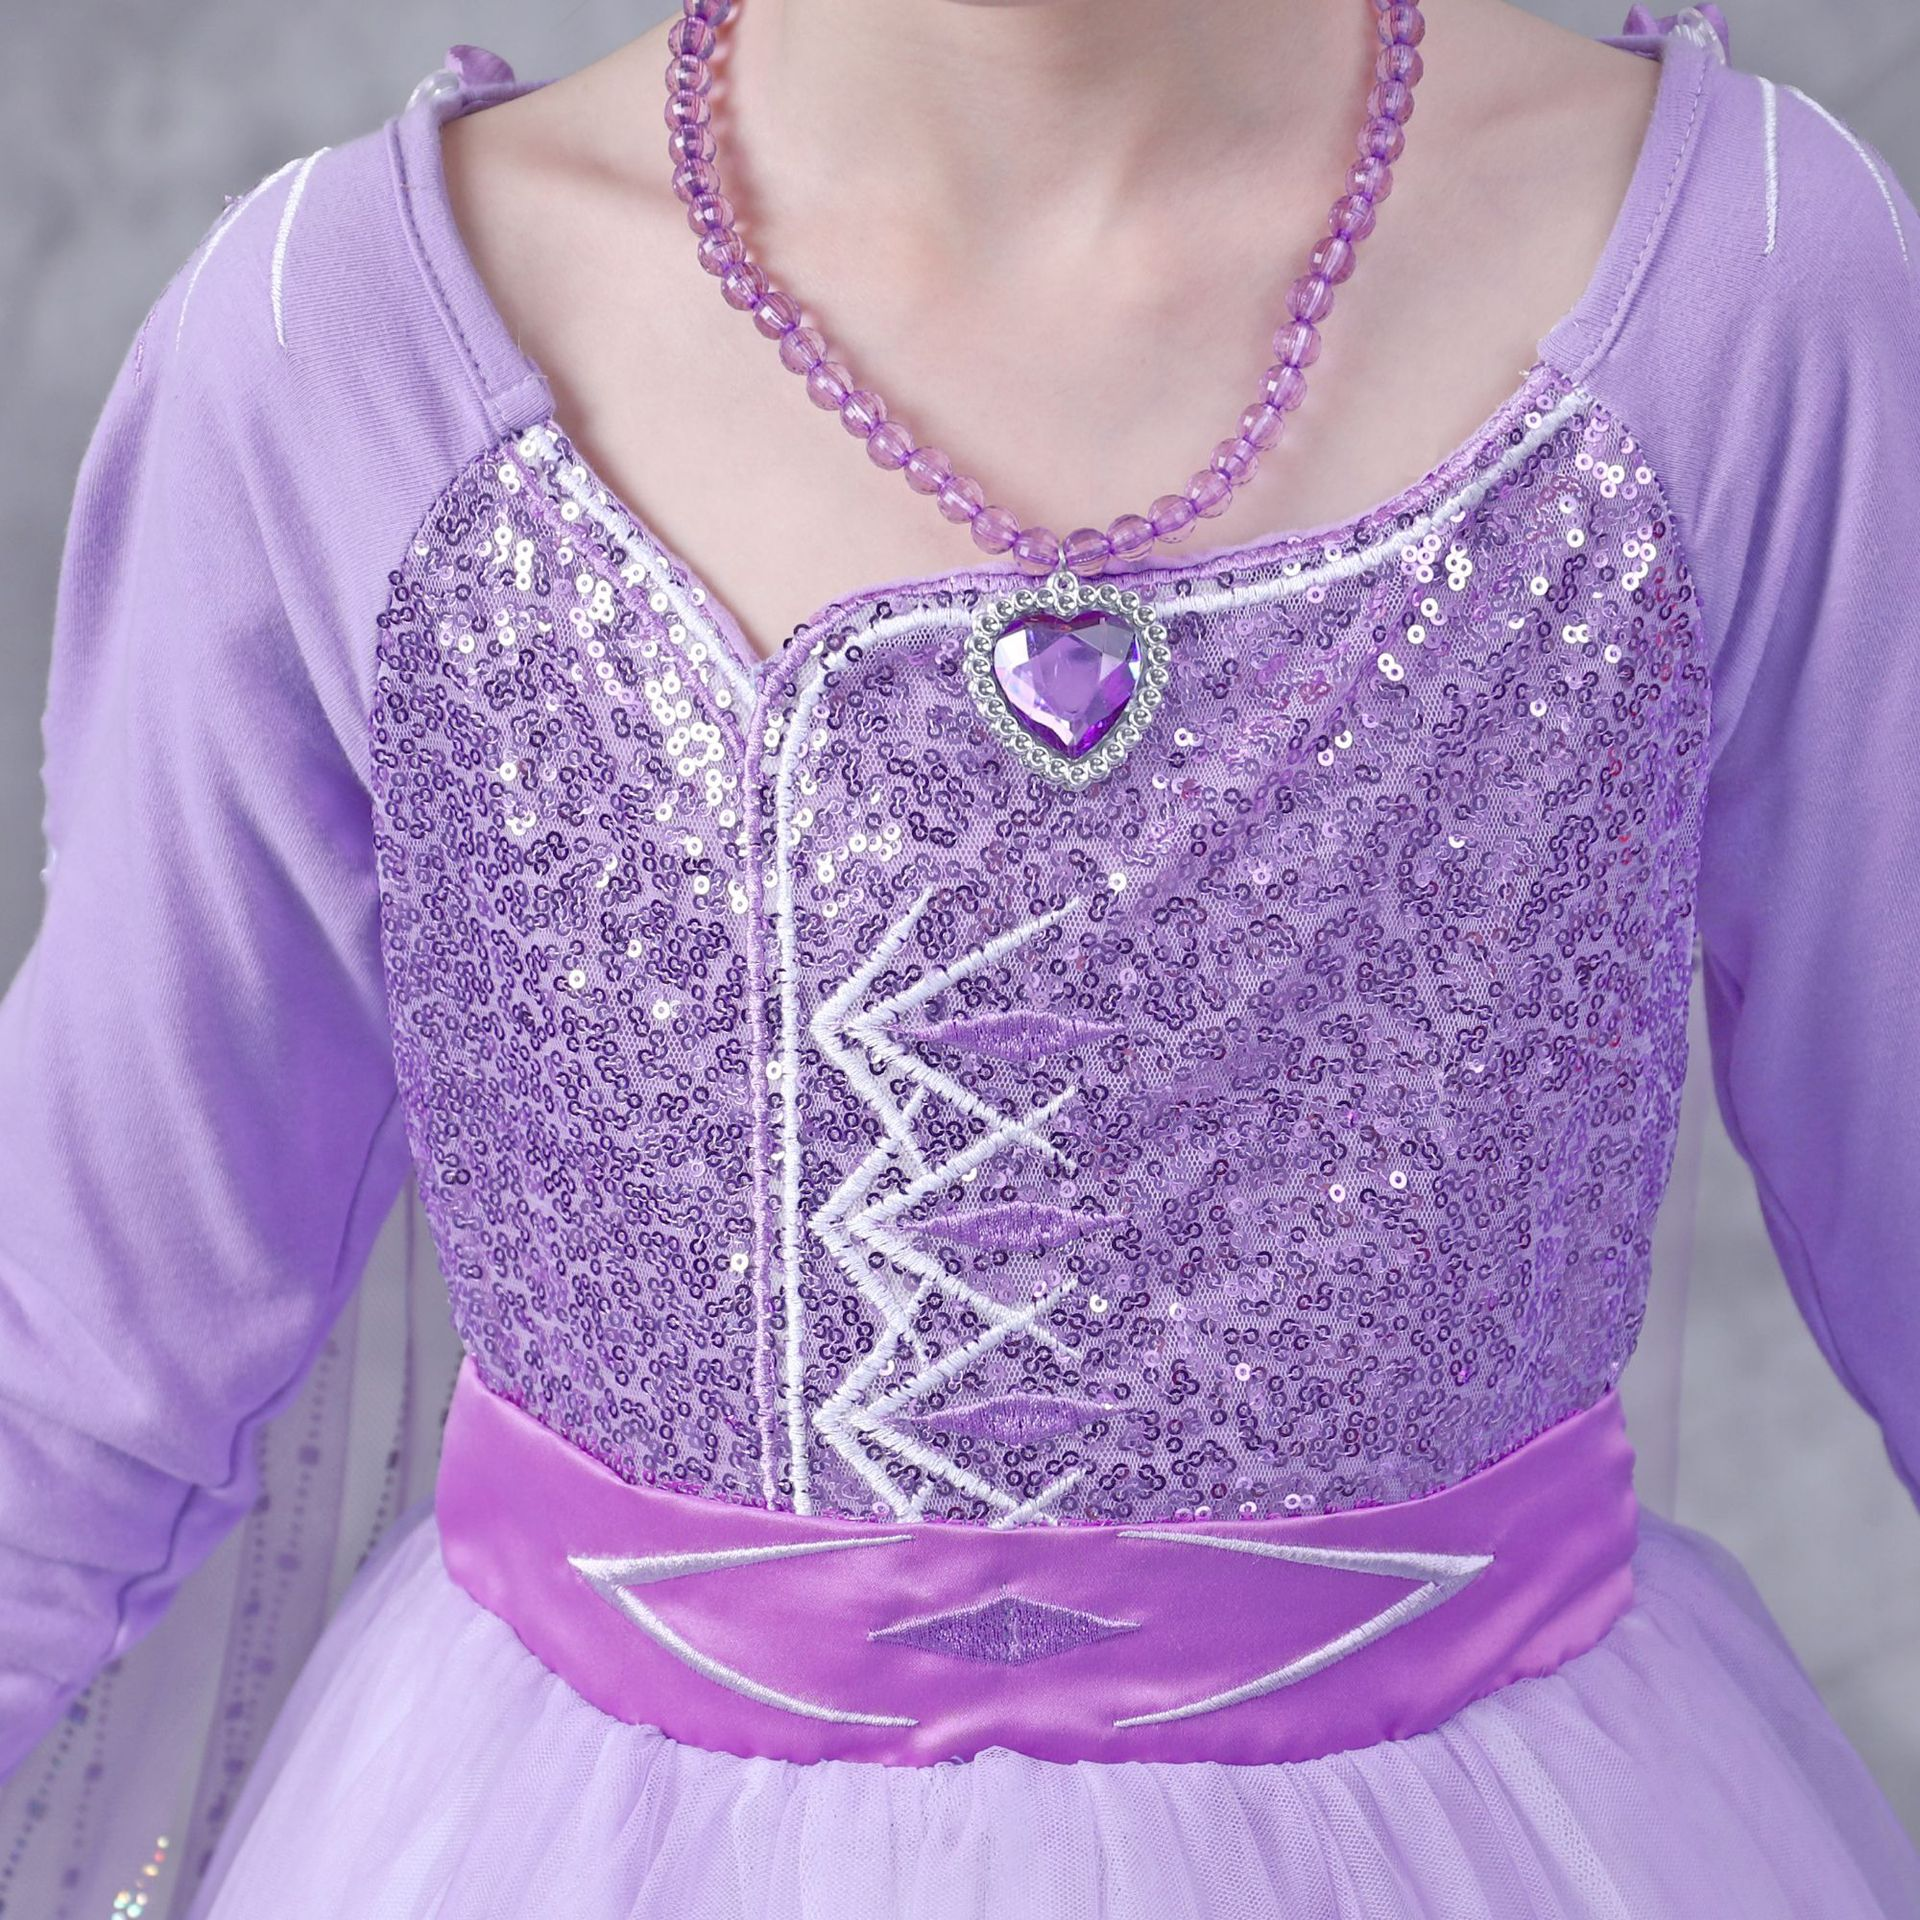 Girls Elsa Anna Long Hair Tangled Princess  Dress Sequins Fancy Cosplay Costume Purple Ball Gown Christmas Birthday Party  kids 6